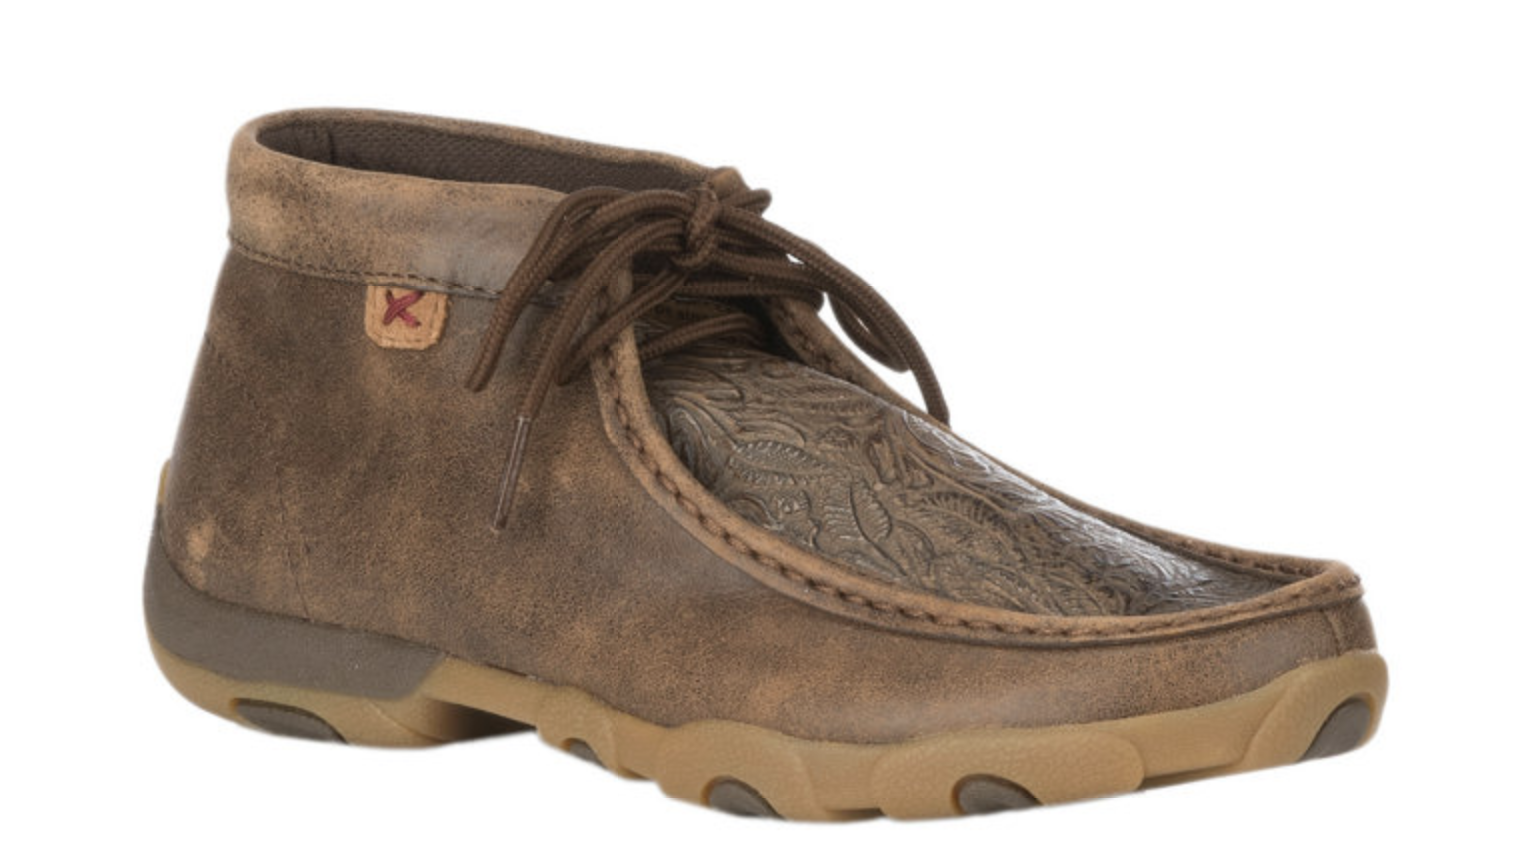 Twisted X Women's Moccasins